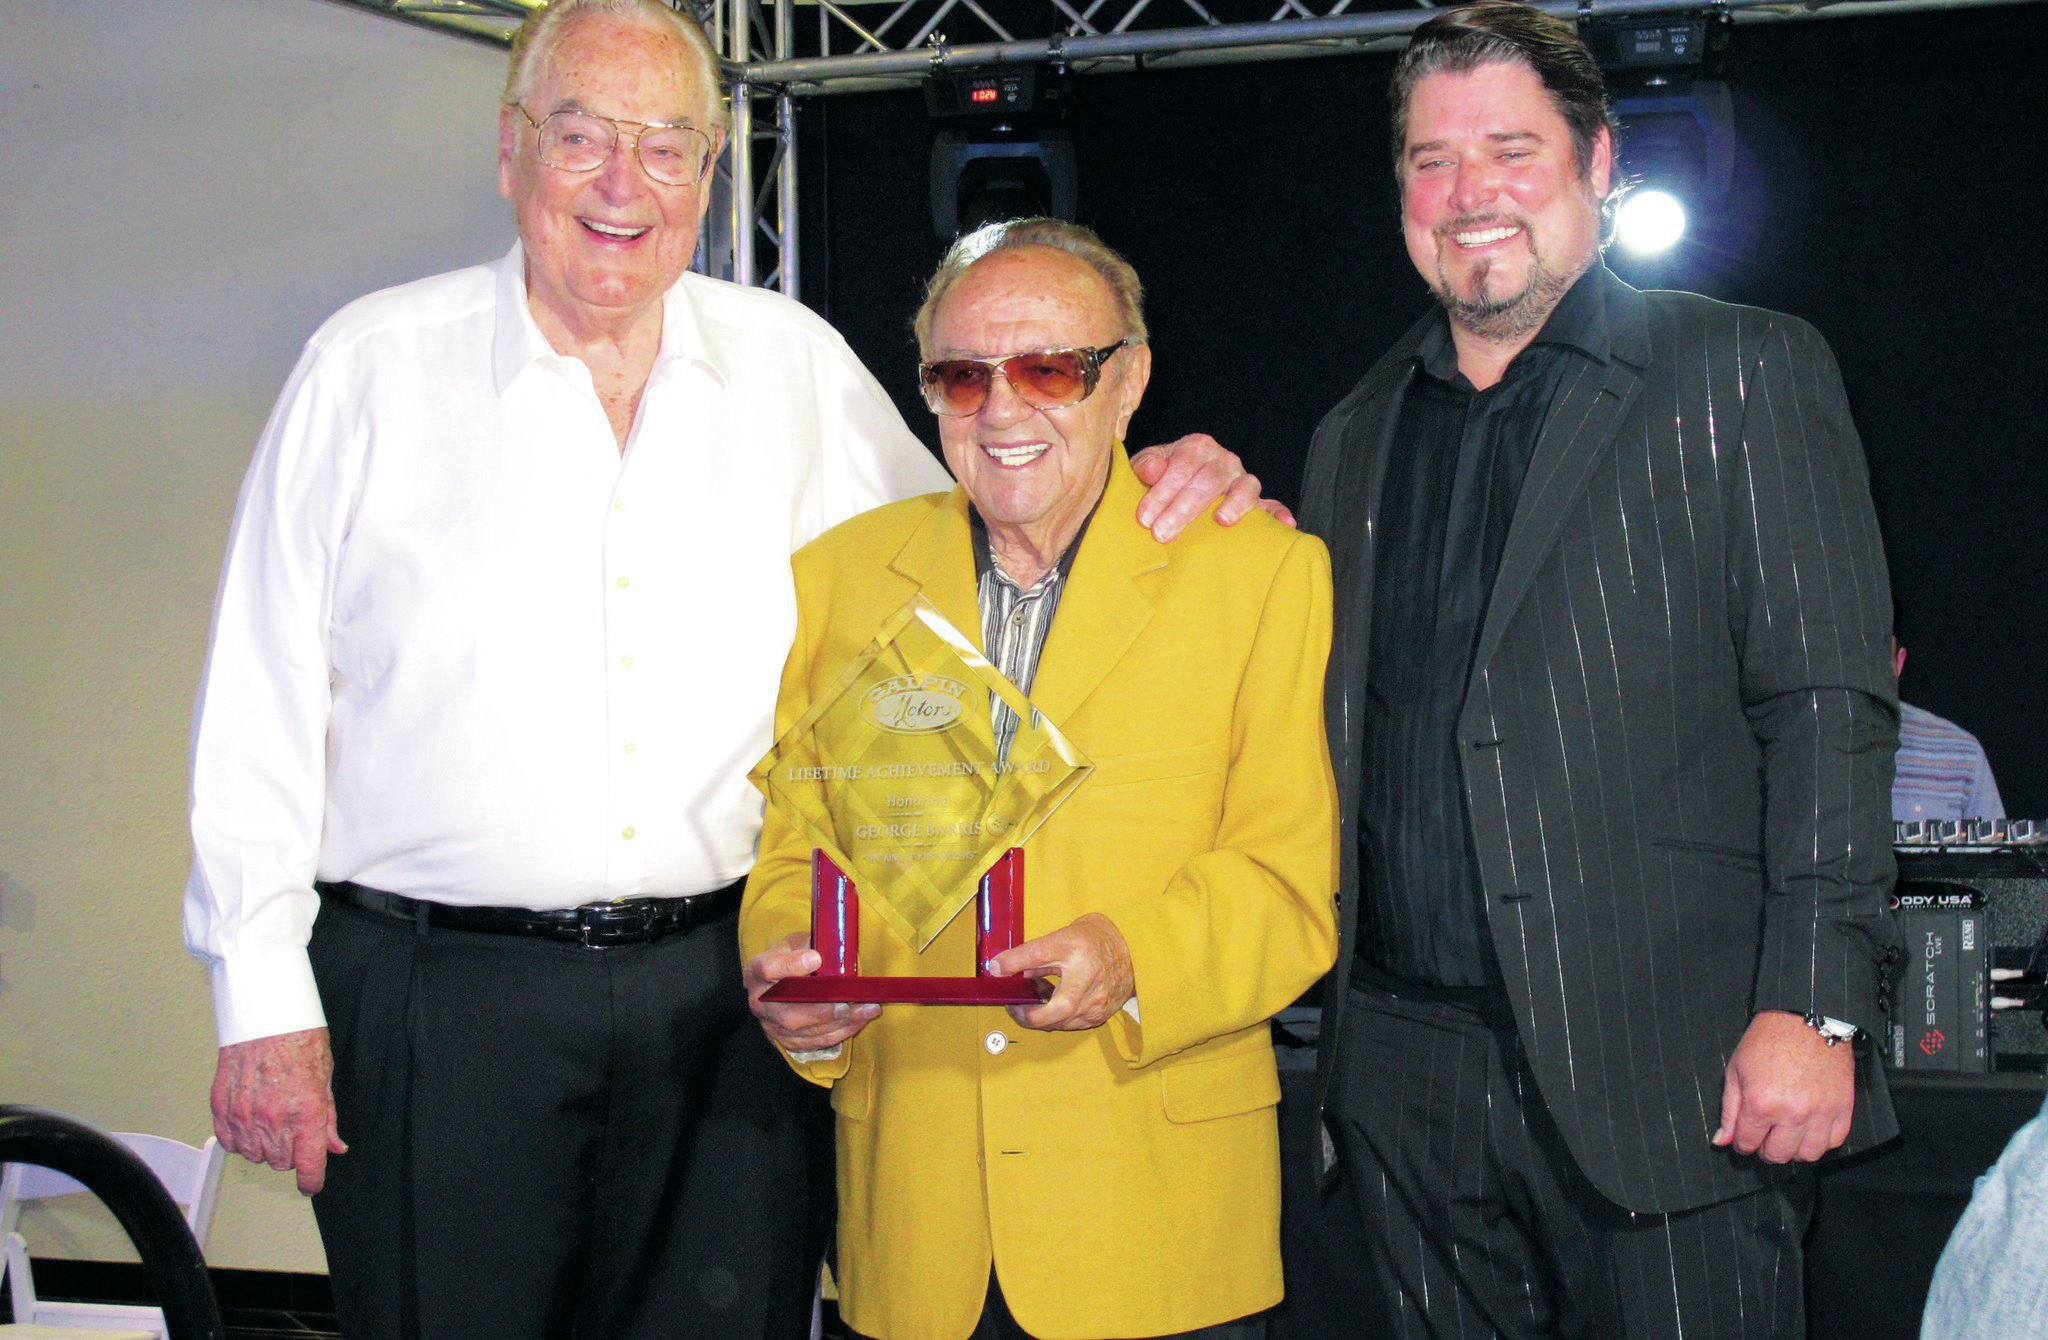 Bert Boeckmann (left) and his son Beau flank George Barris as he receives Galpin Motors' Lifetime Achievement Award.